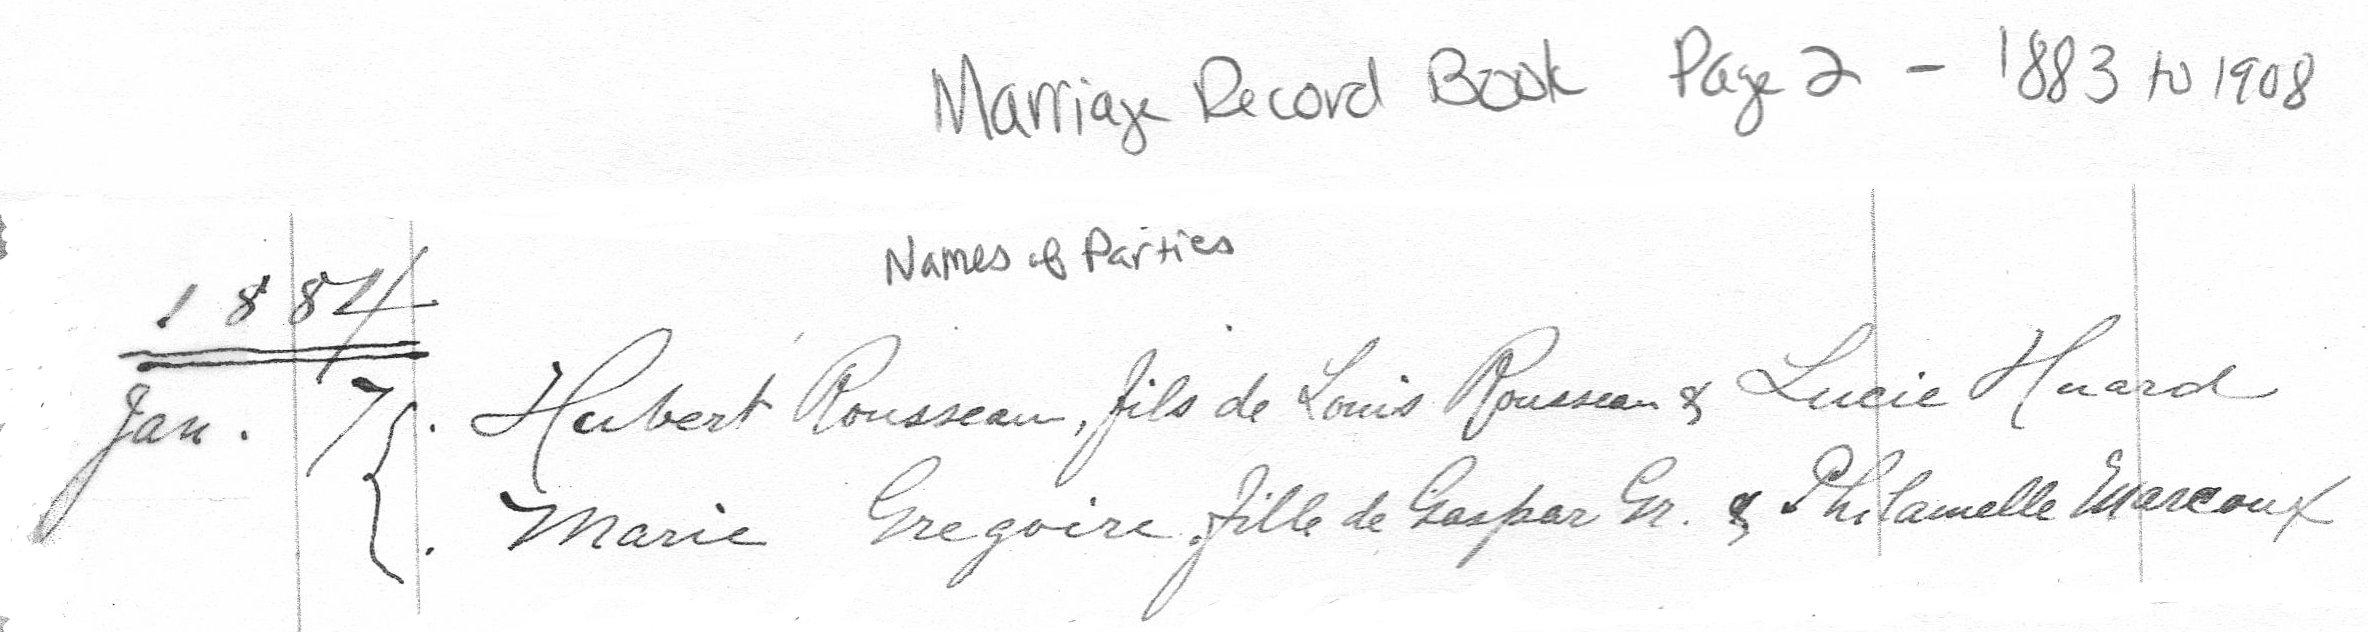 Extract 1 from 1884 Marriage Register of Hubert Brooks to Marie Gregoire